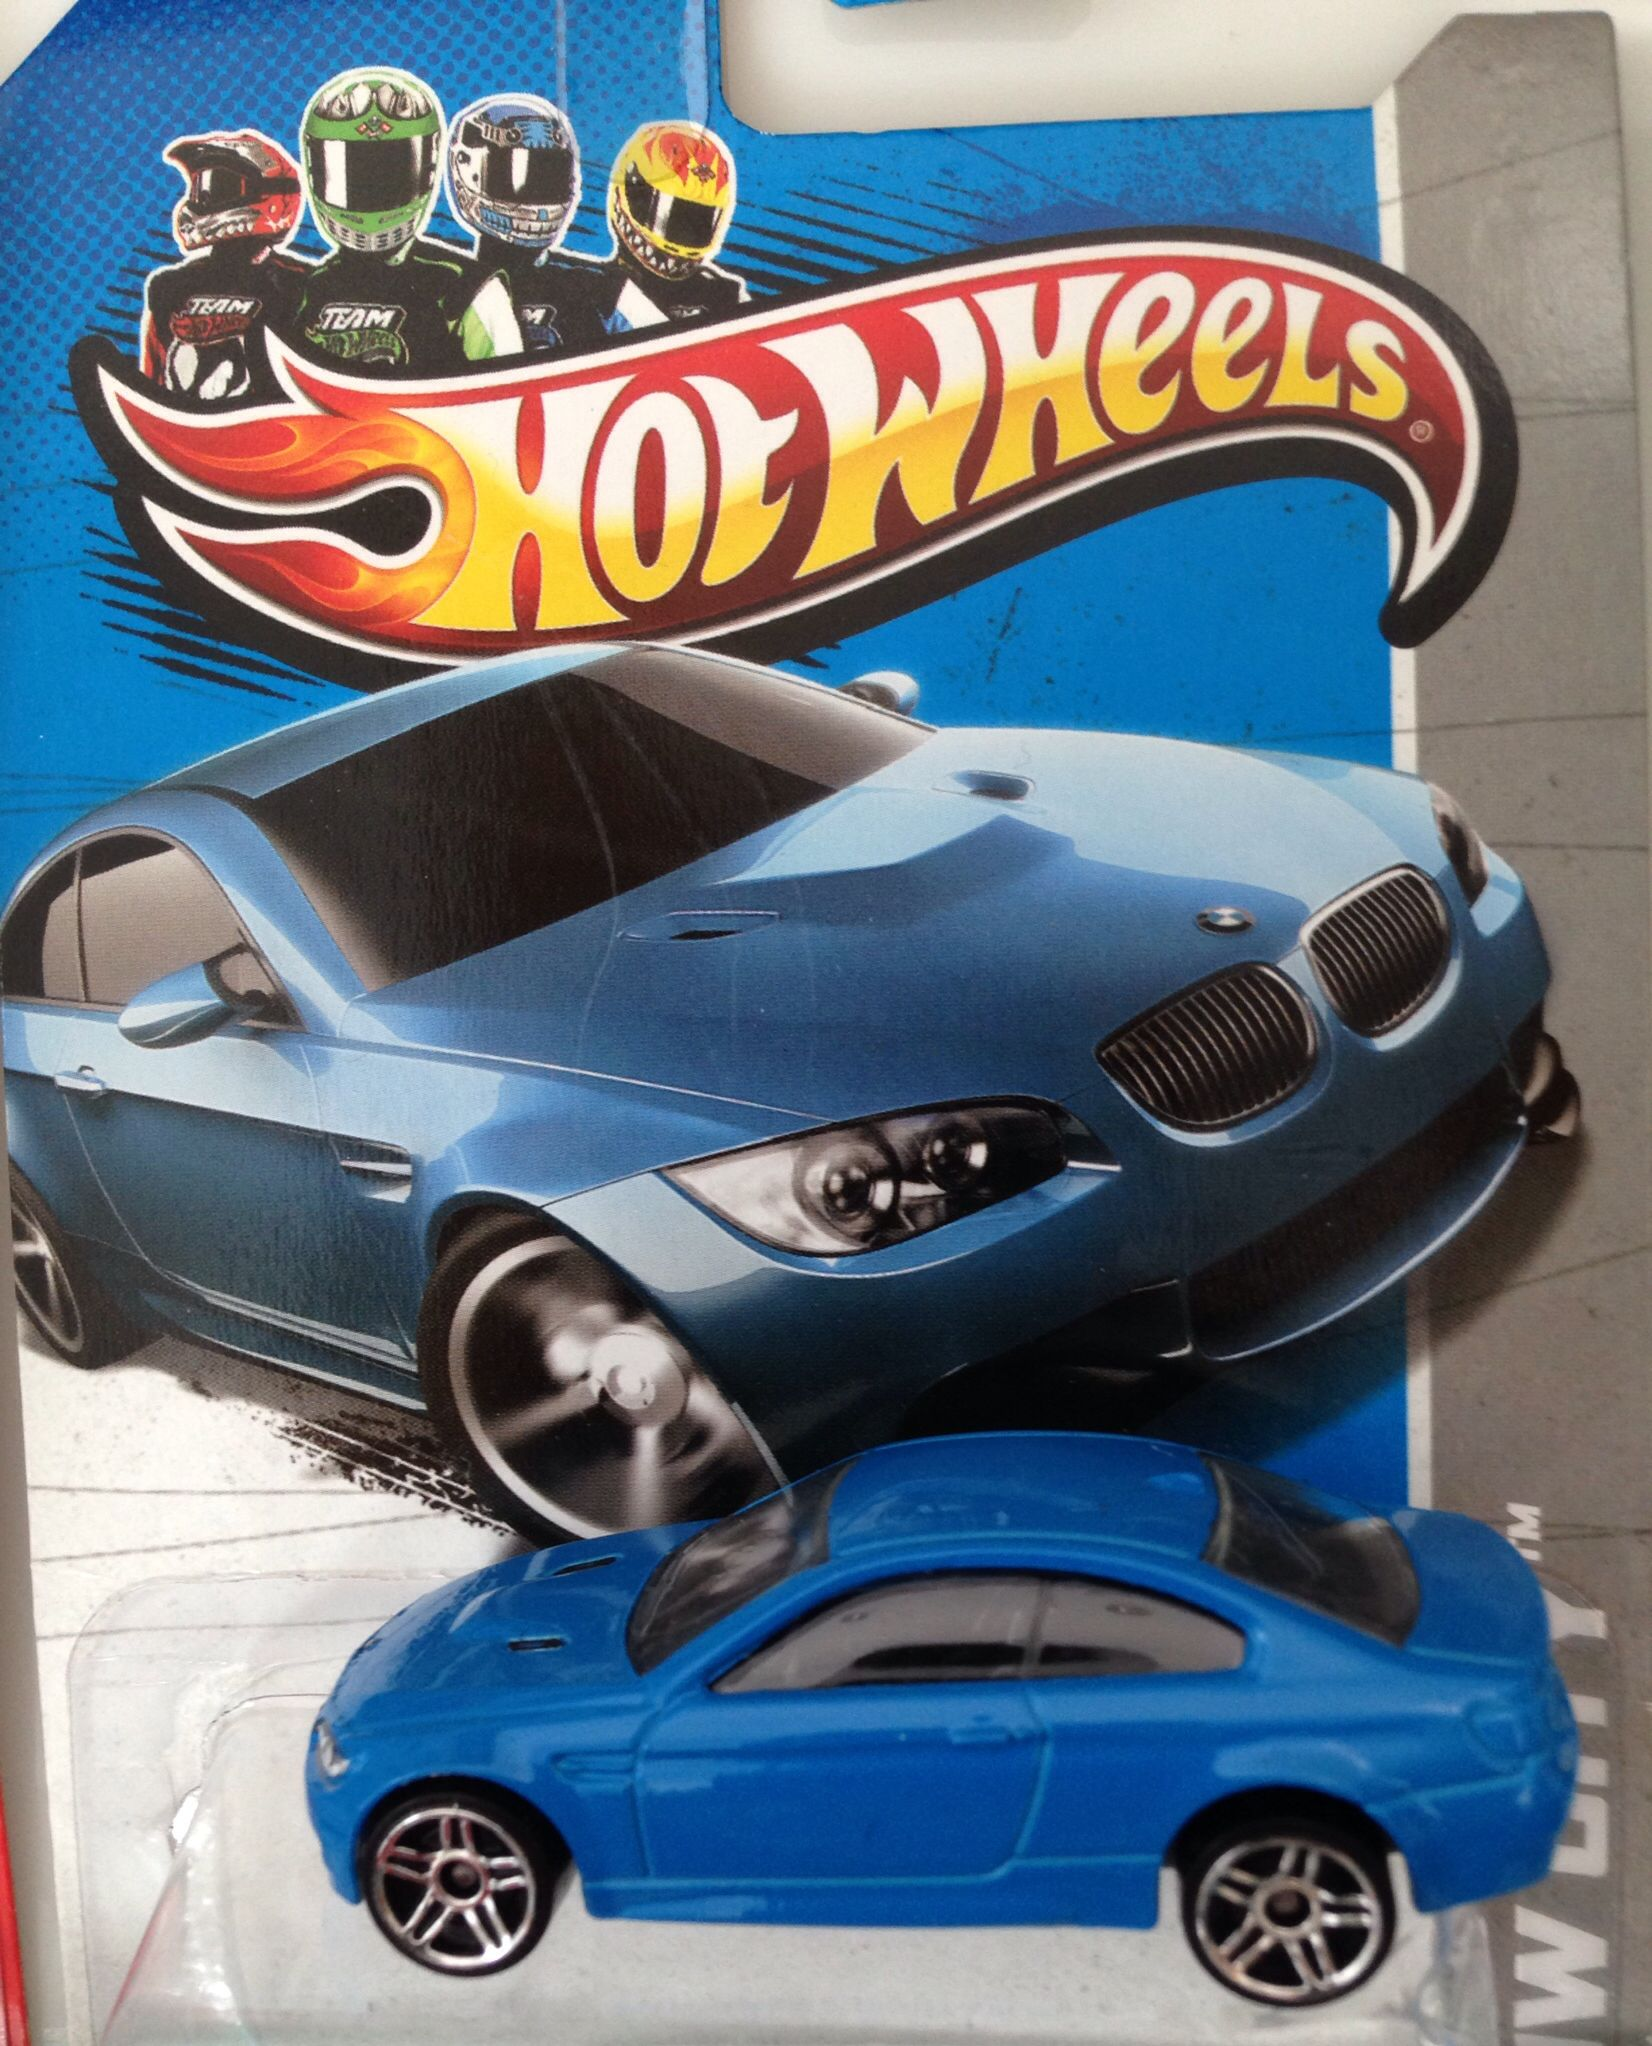 Hot Wheels E92 M3 Dressed In Laguna Seca Blue With Images